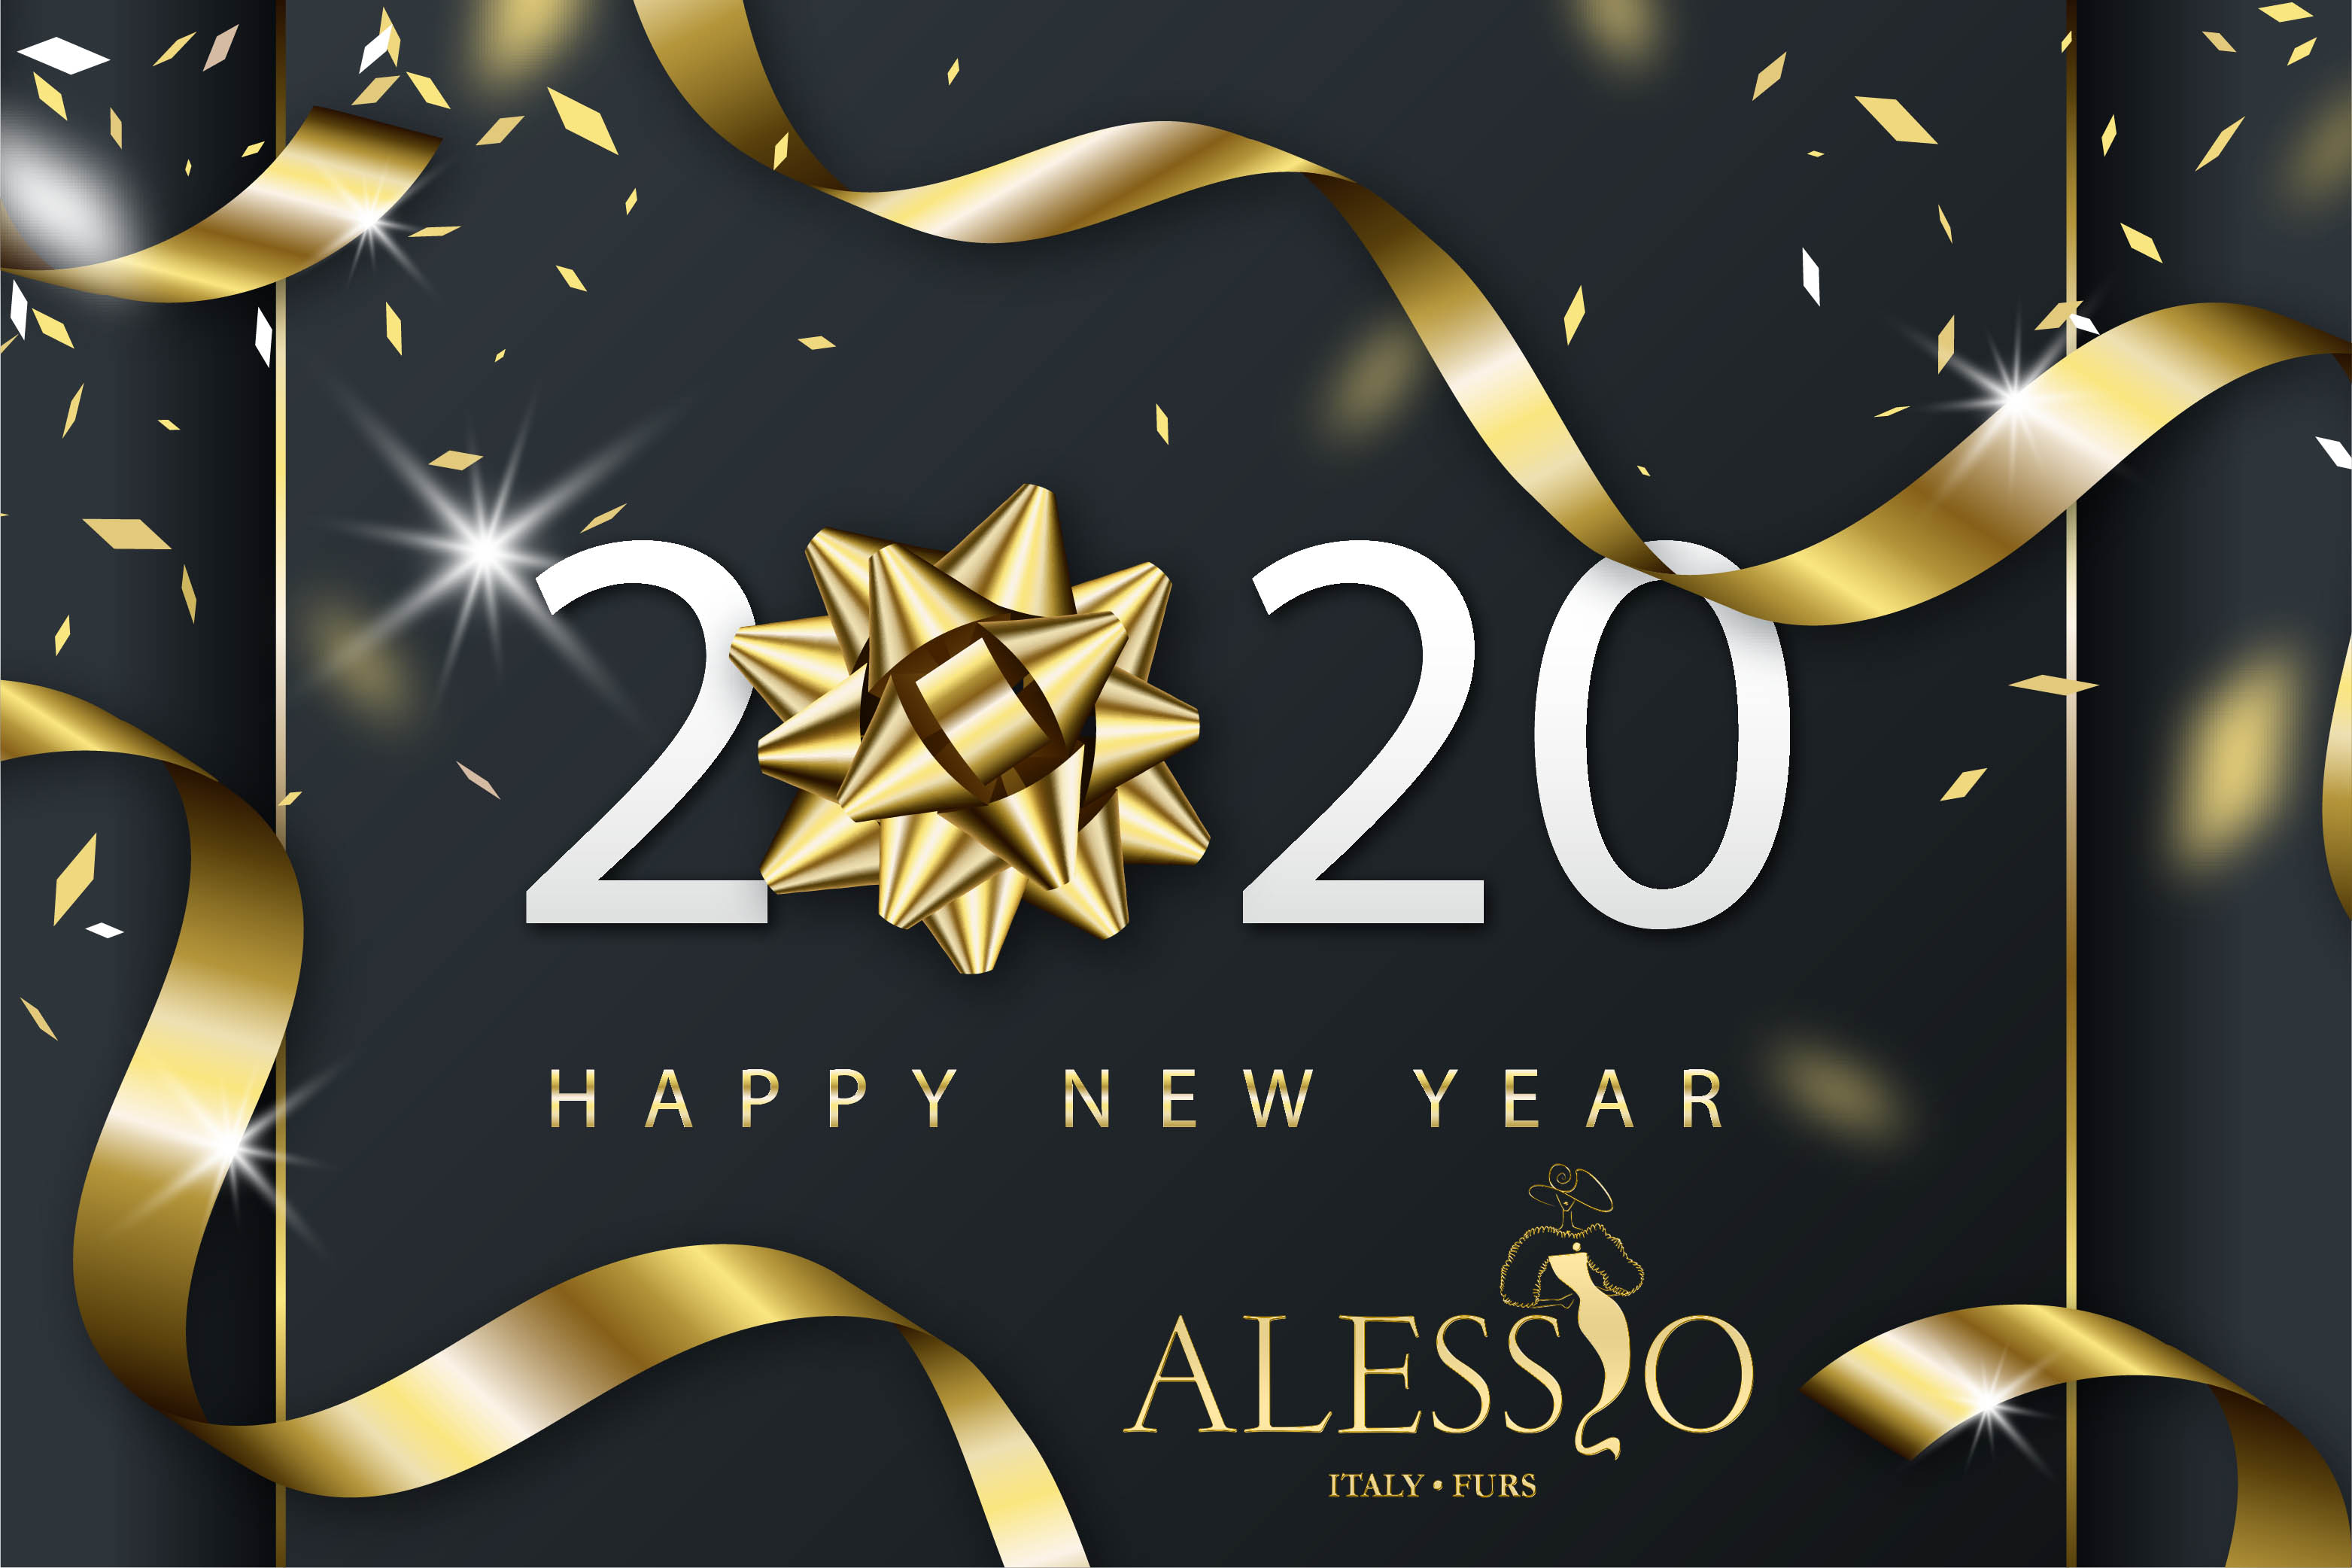 Alessio team wishing you a very Merry Christmas!